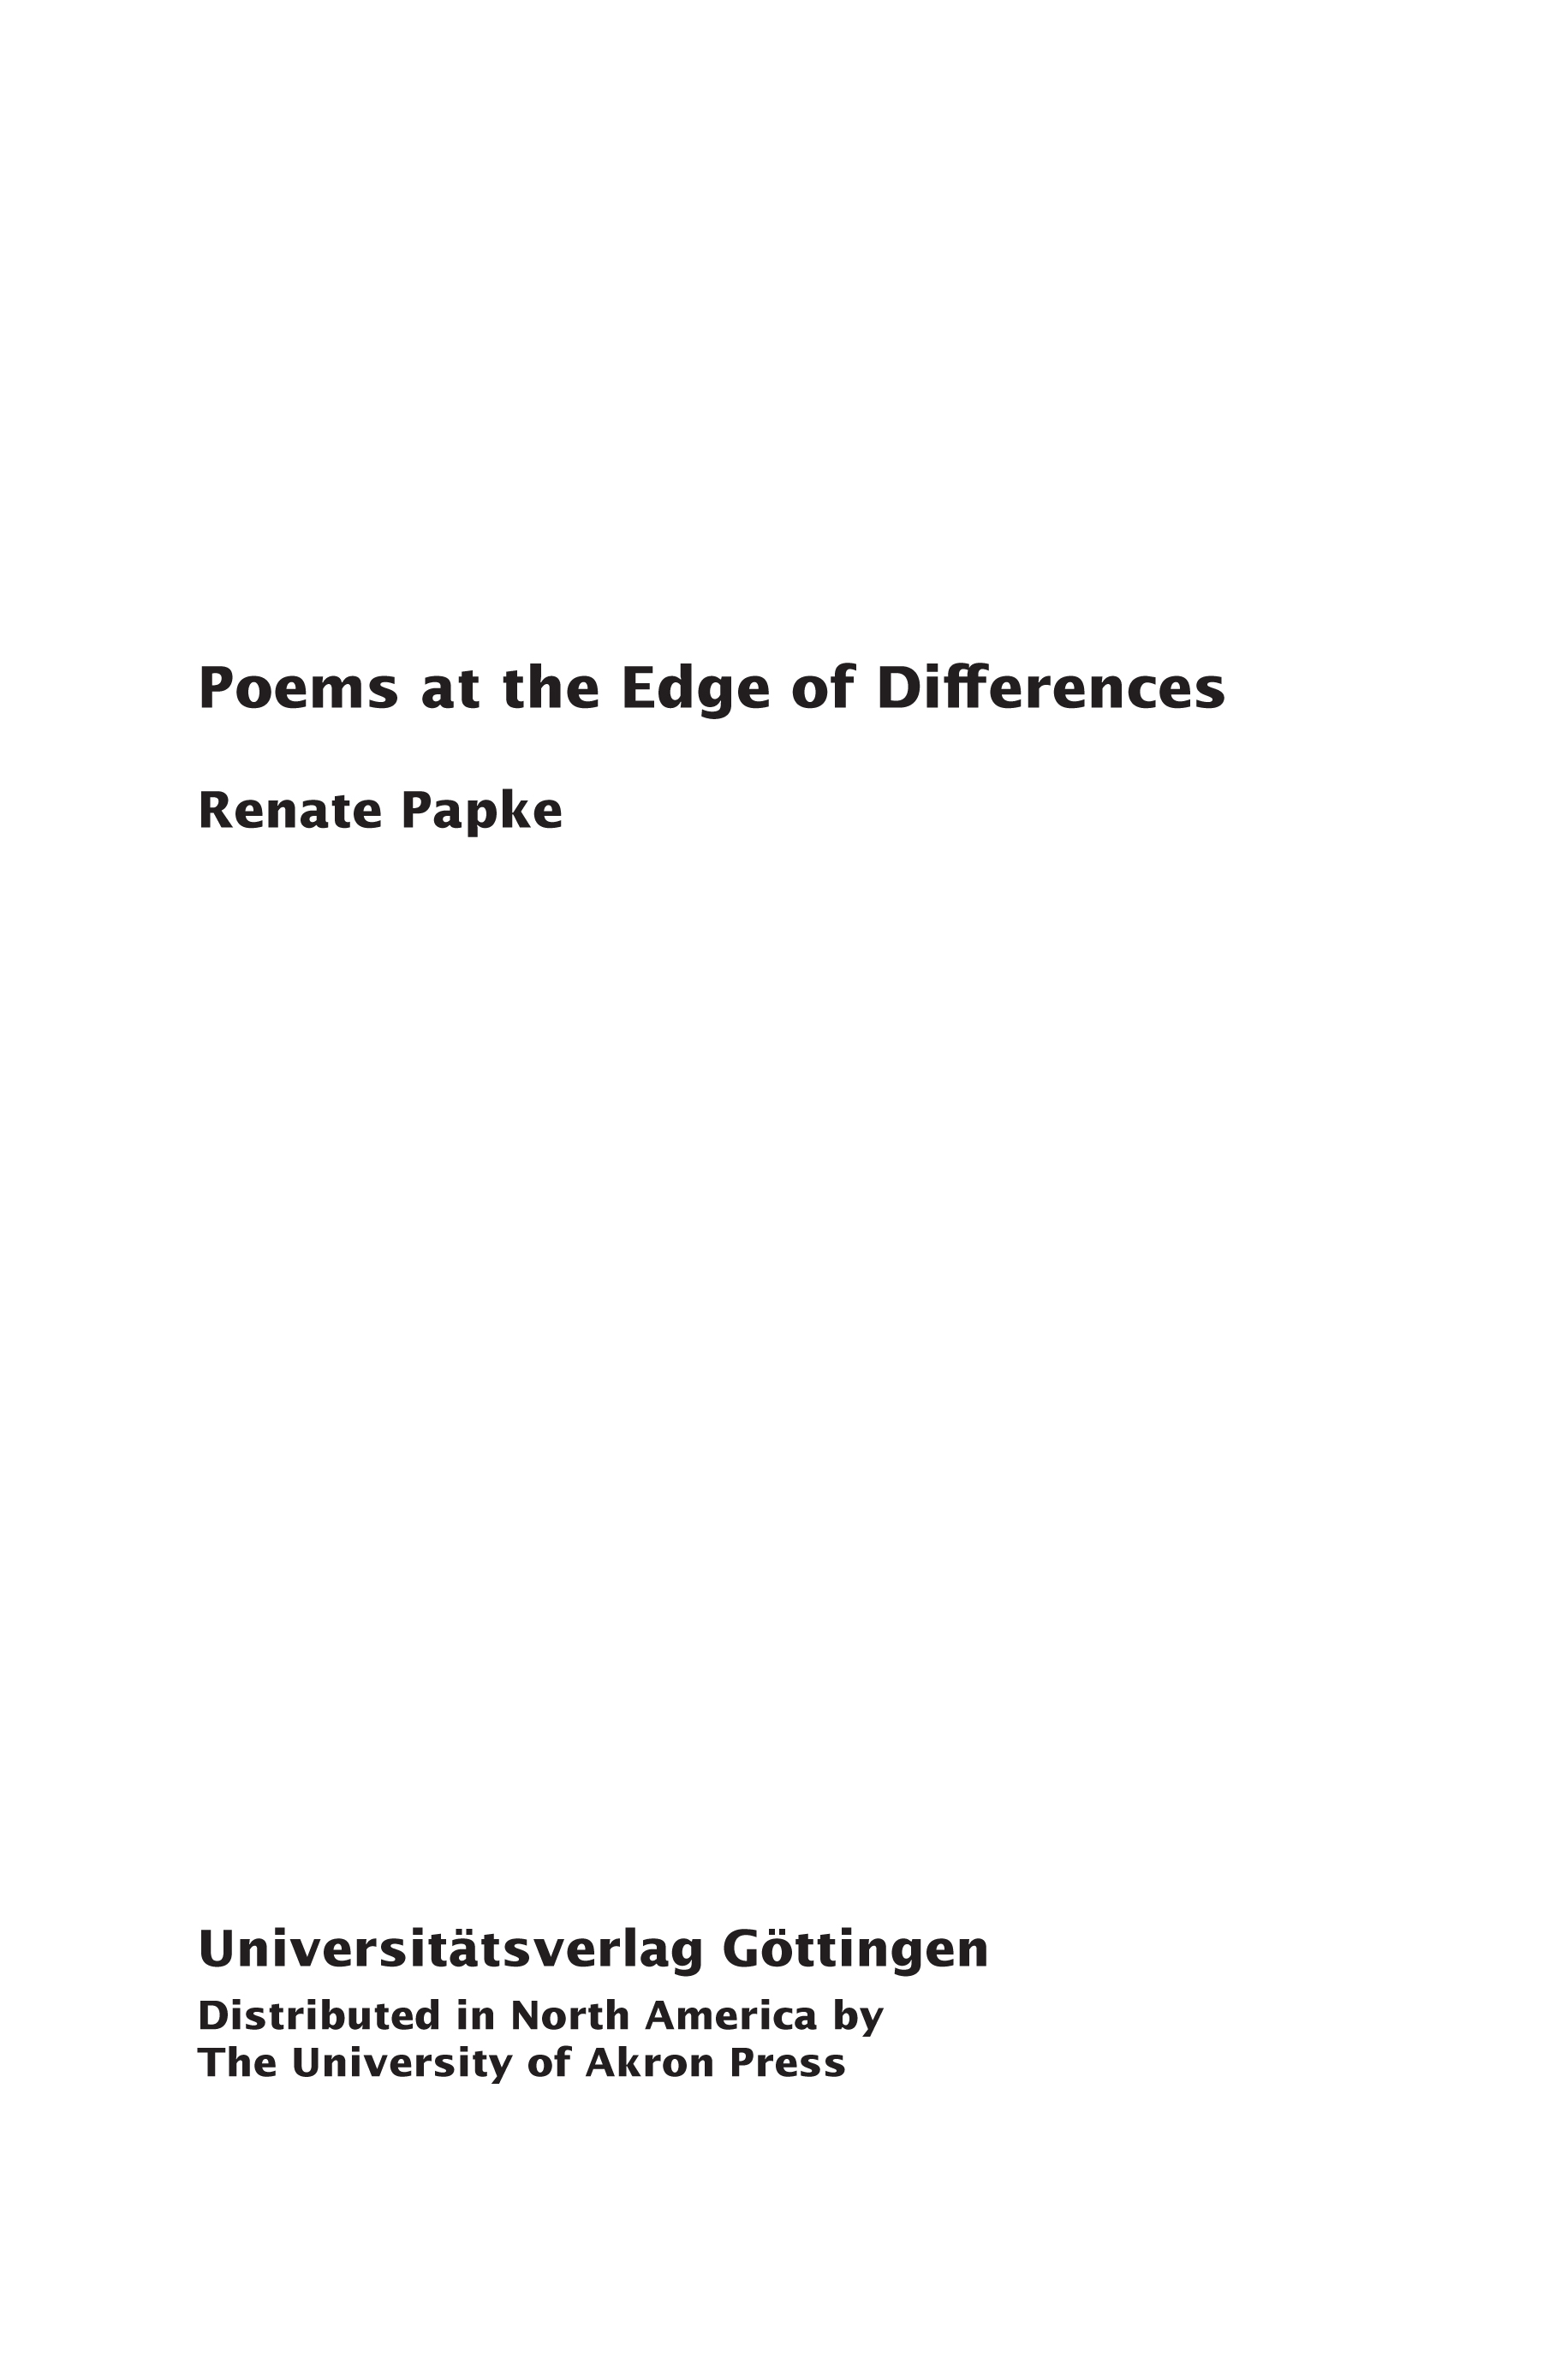 Poems at the Edge of Differences: Mothering in New English Poetry by Women